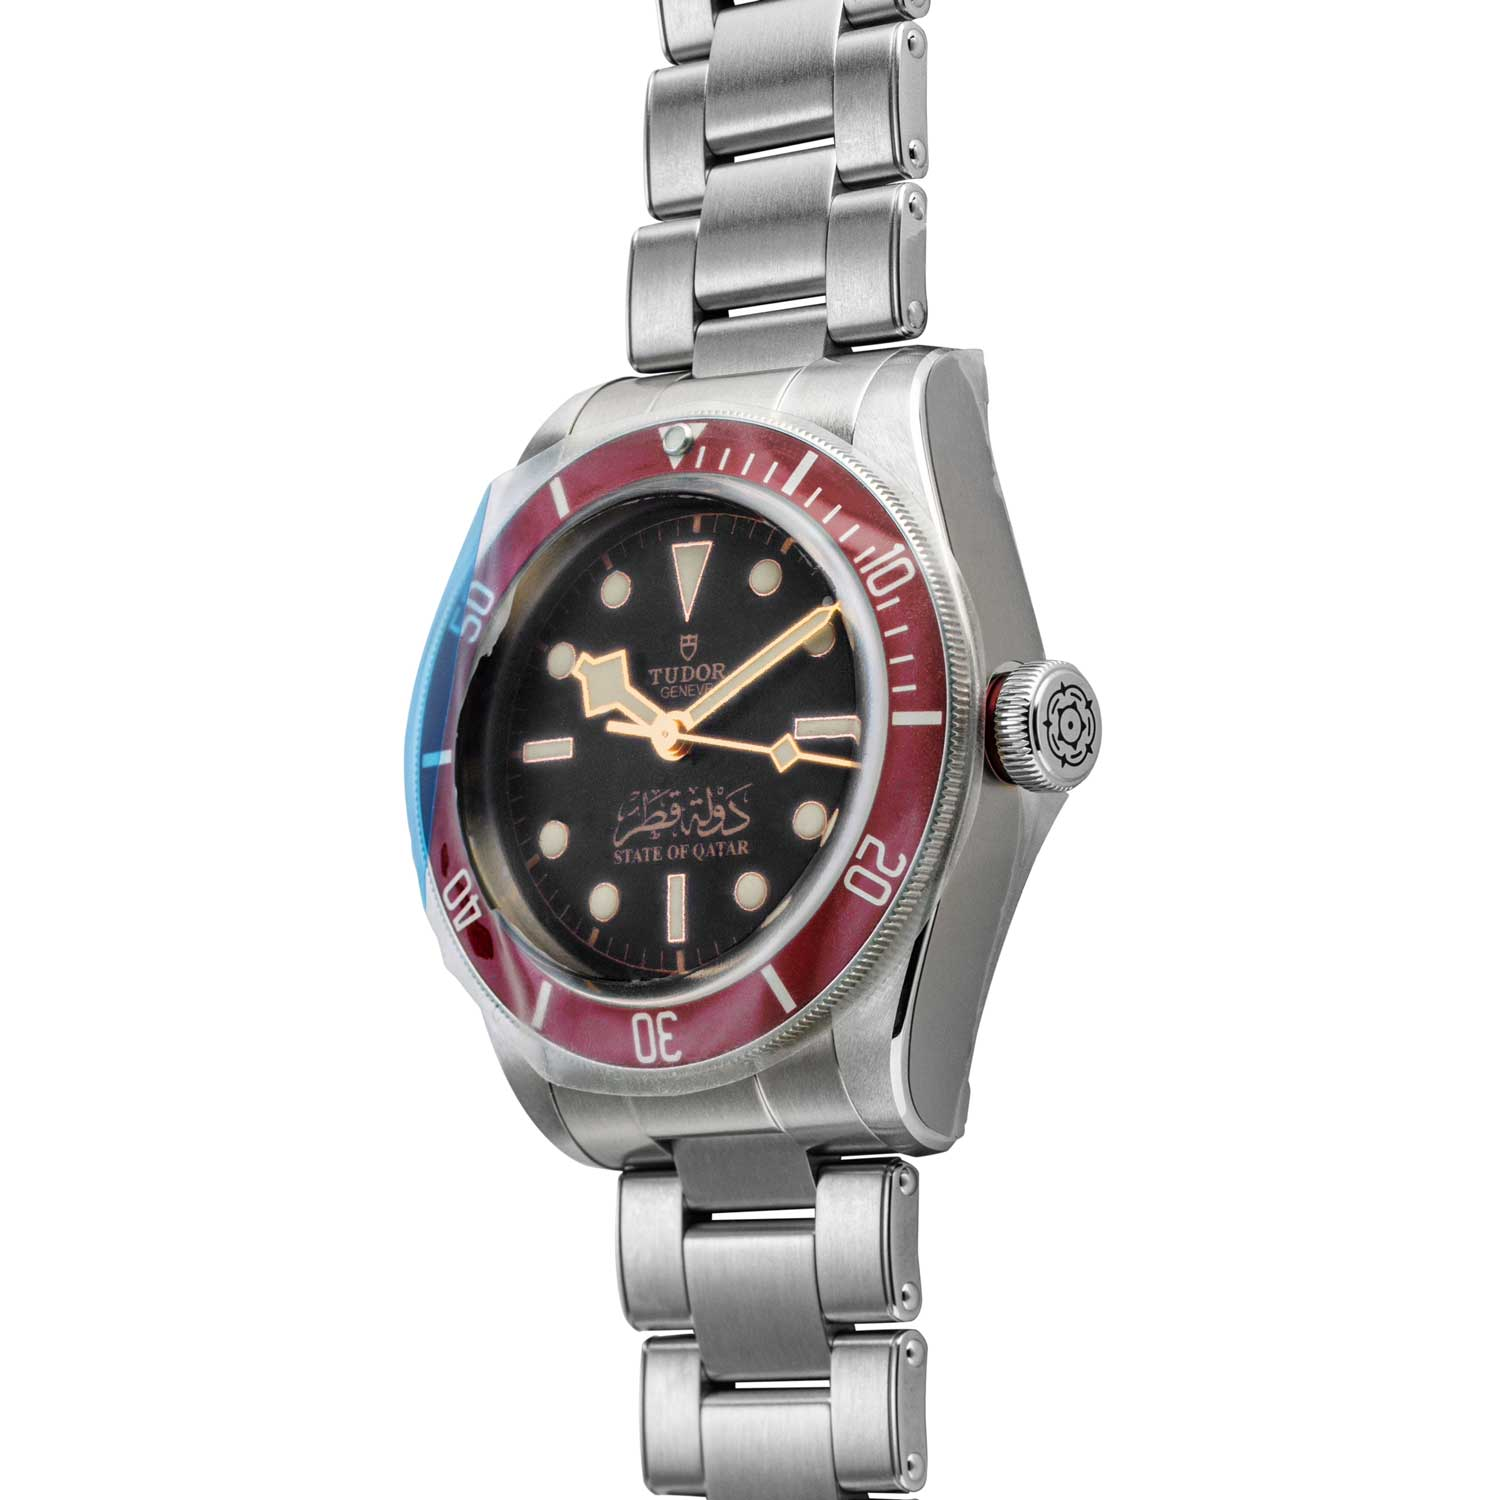 To showcase that the NOS Tudor State of Qatar Black with a burgundy bezel, is in fact NOS, you can see that the watch still has its factory plastic wrapping on in the presented photographs; available for purchase through Shop.Revolution.Watch at the time of publication (©Revolution)